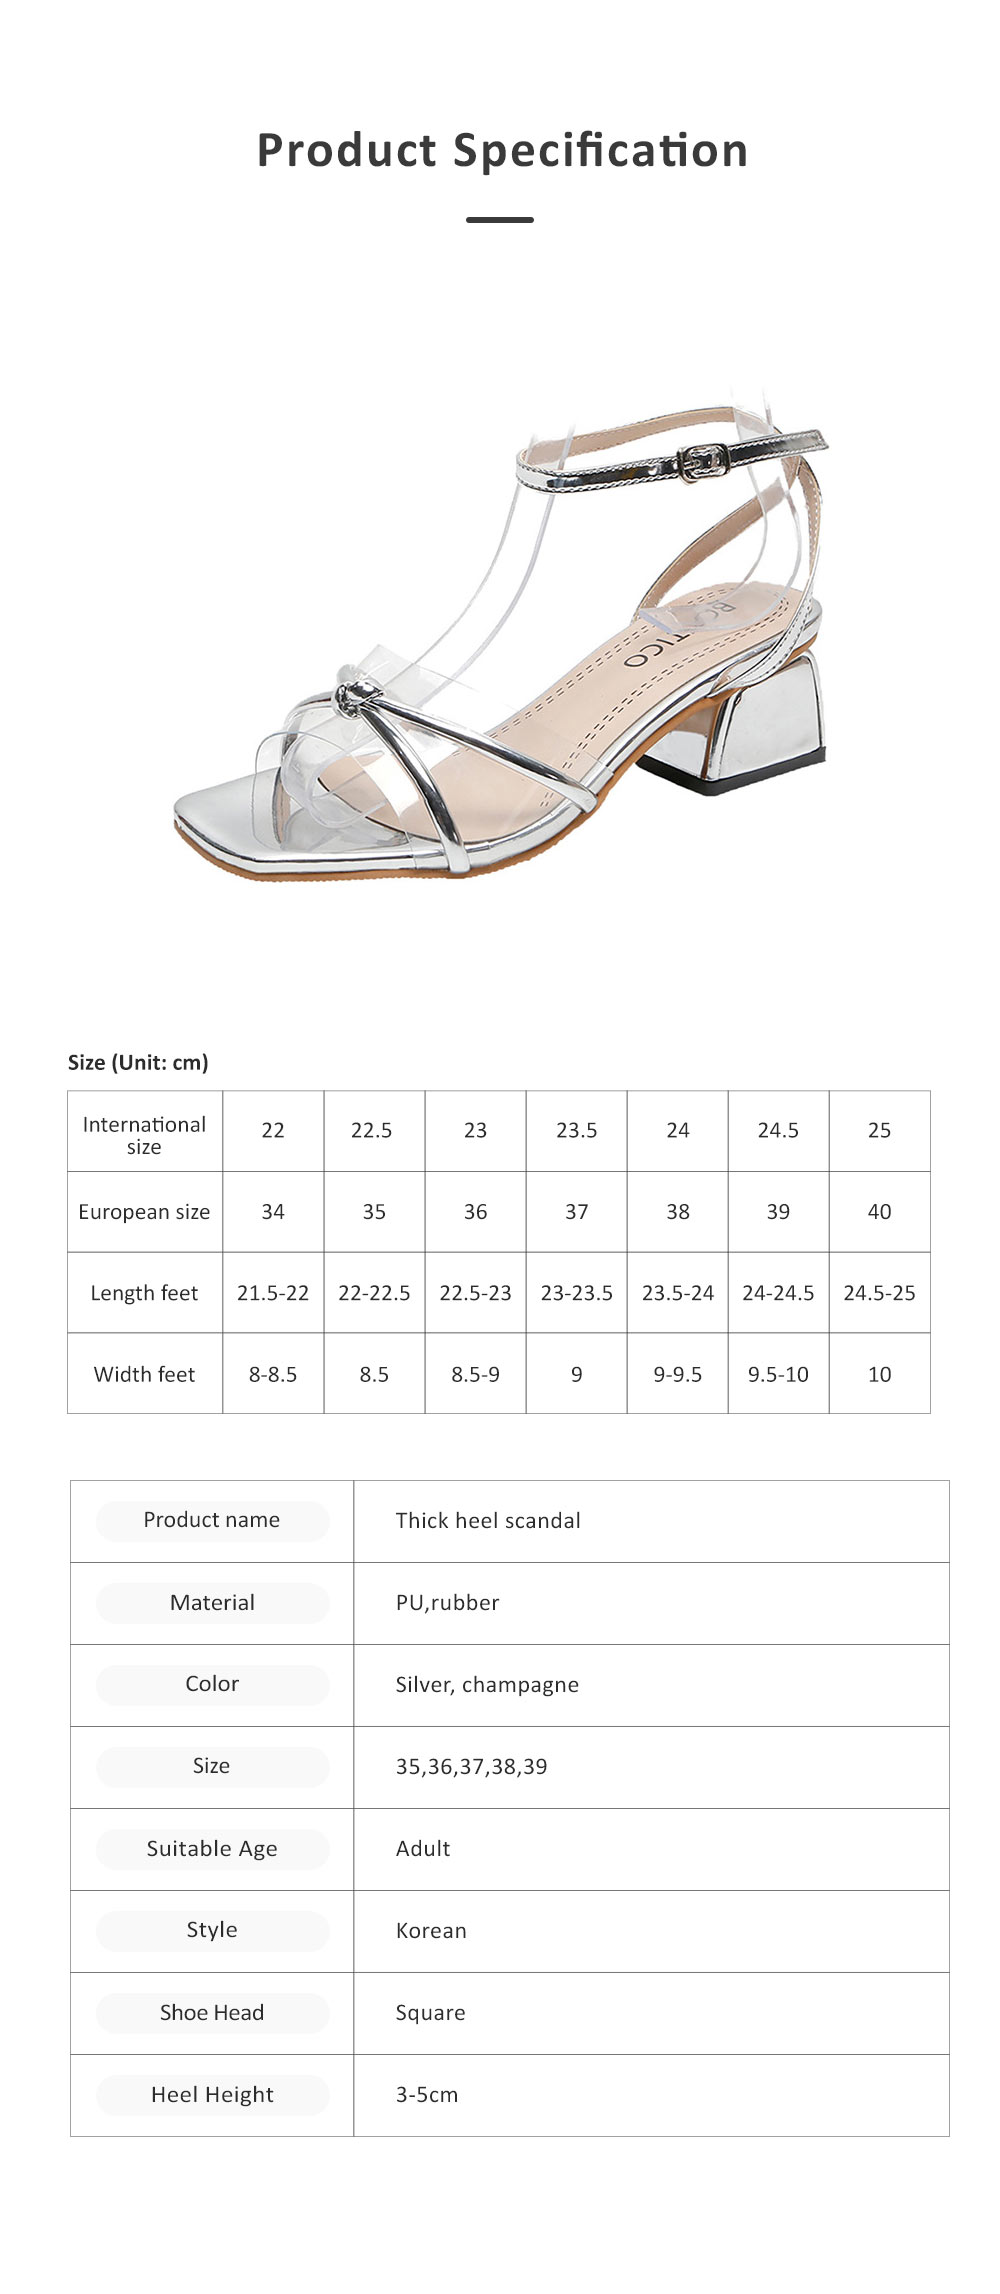 Medium-Height Thick Heel Scandal Transparent Fashion Cross Design PU Rubber Open Toe Shoe with Square Head For Women 7